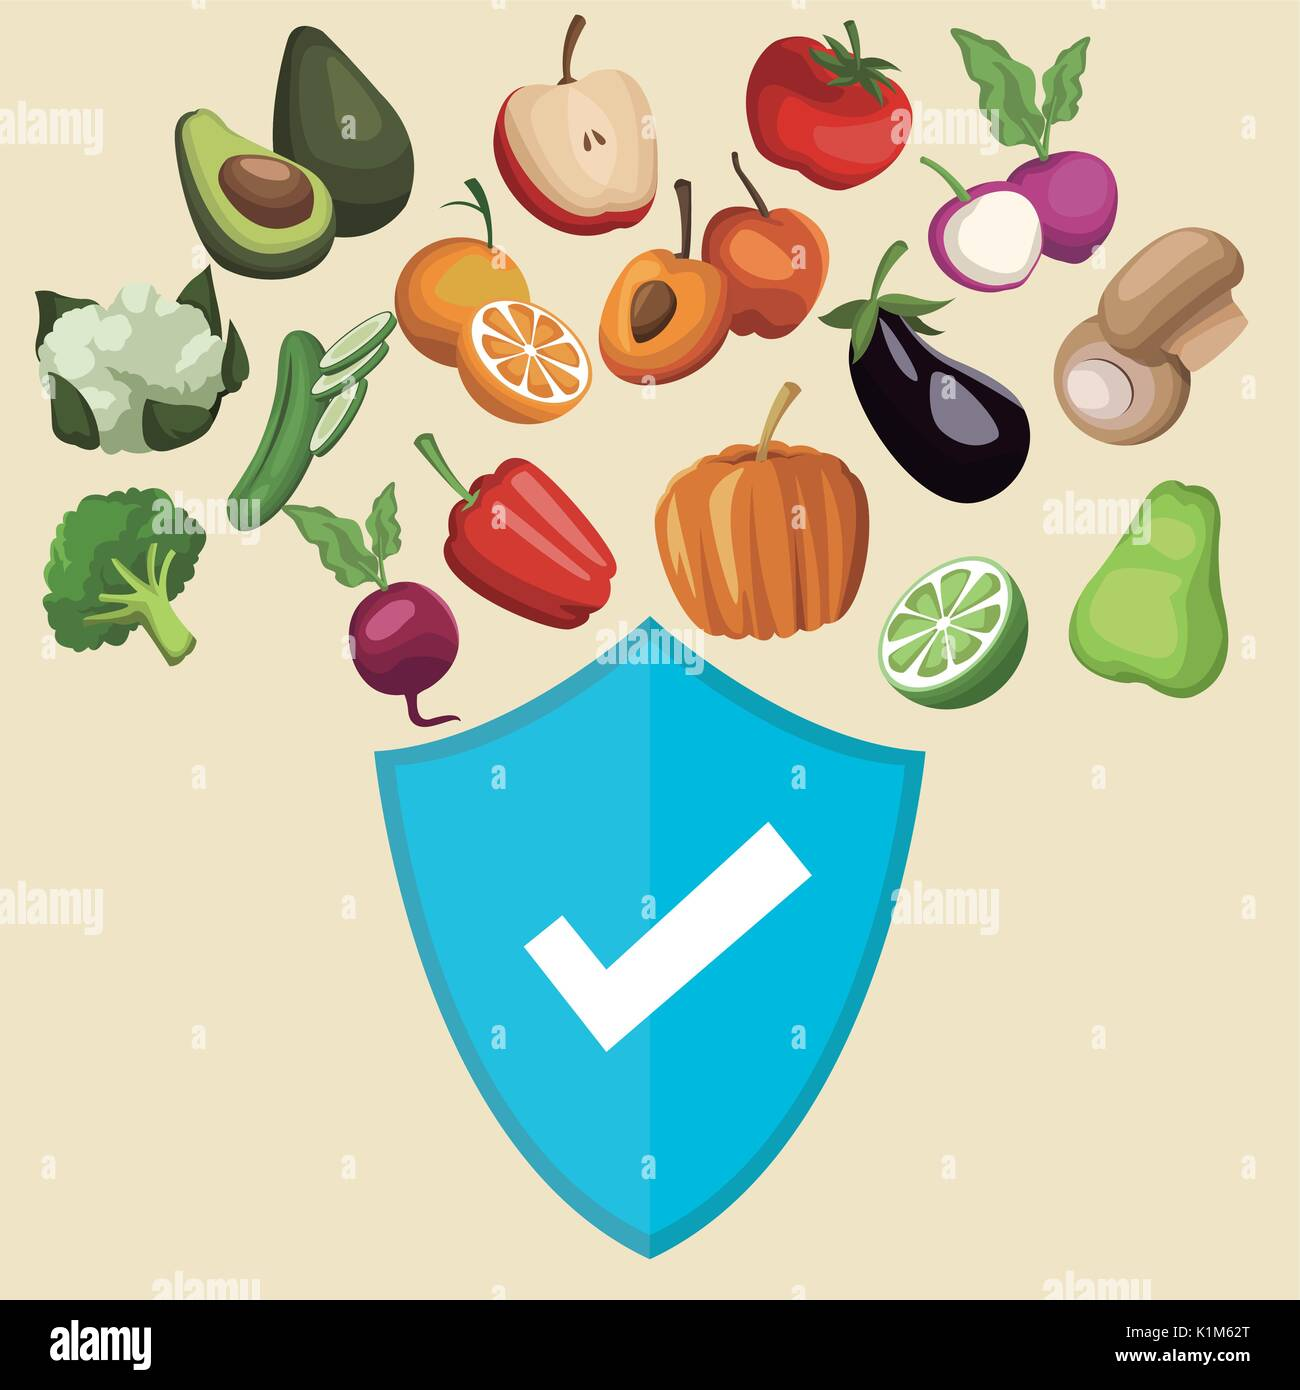 color background with shield healthy symbol and vegetables and ...